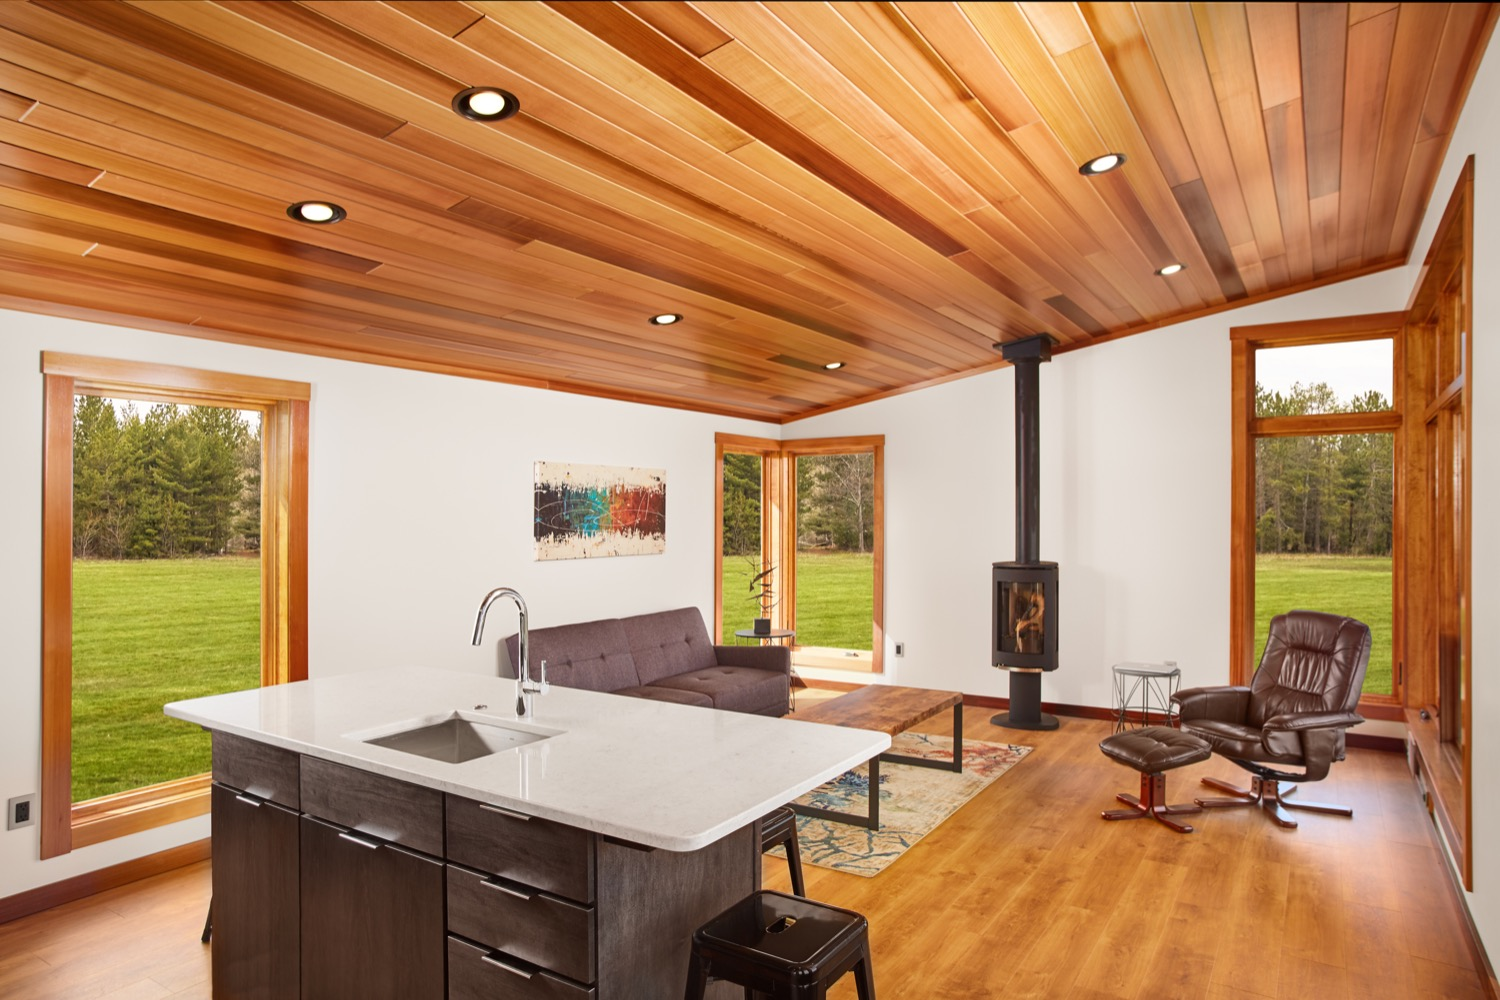 Tiny House Floor Plans Small Cabins Tiny Houses Small: 601 Sq. Ft. Aspen Small House By Dickinson Homes